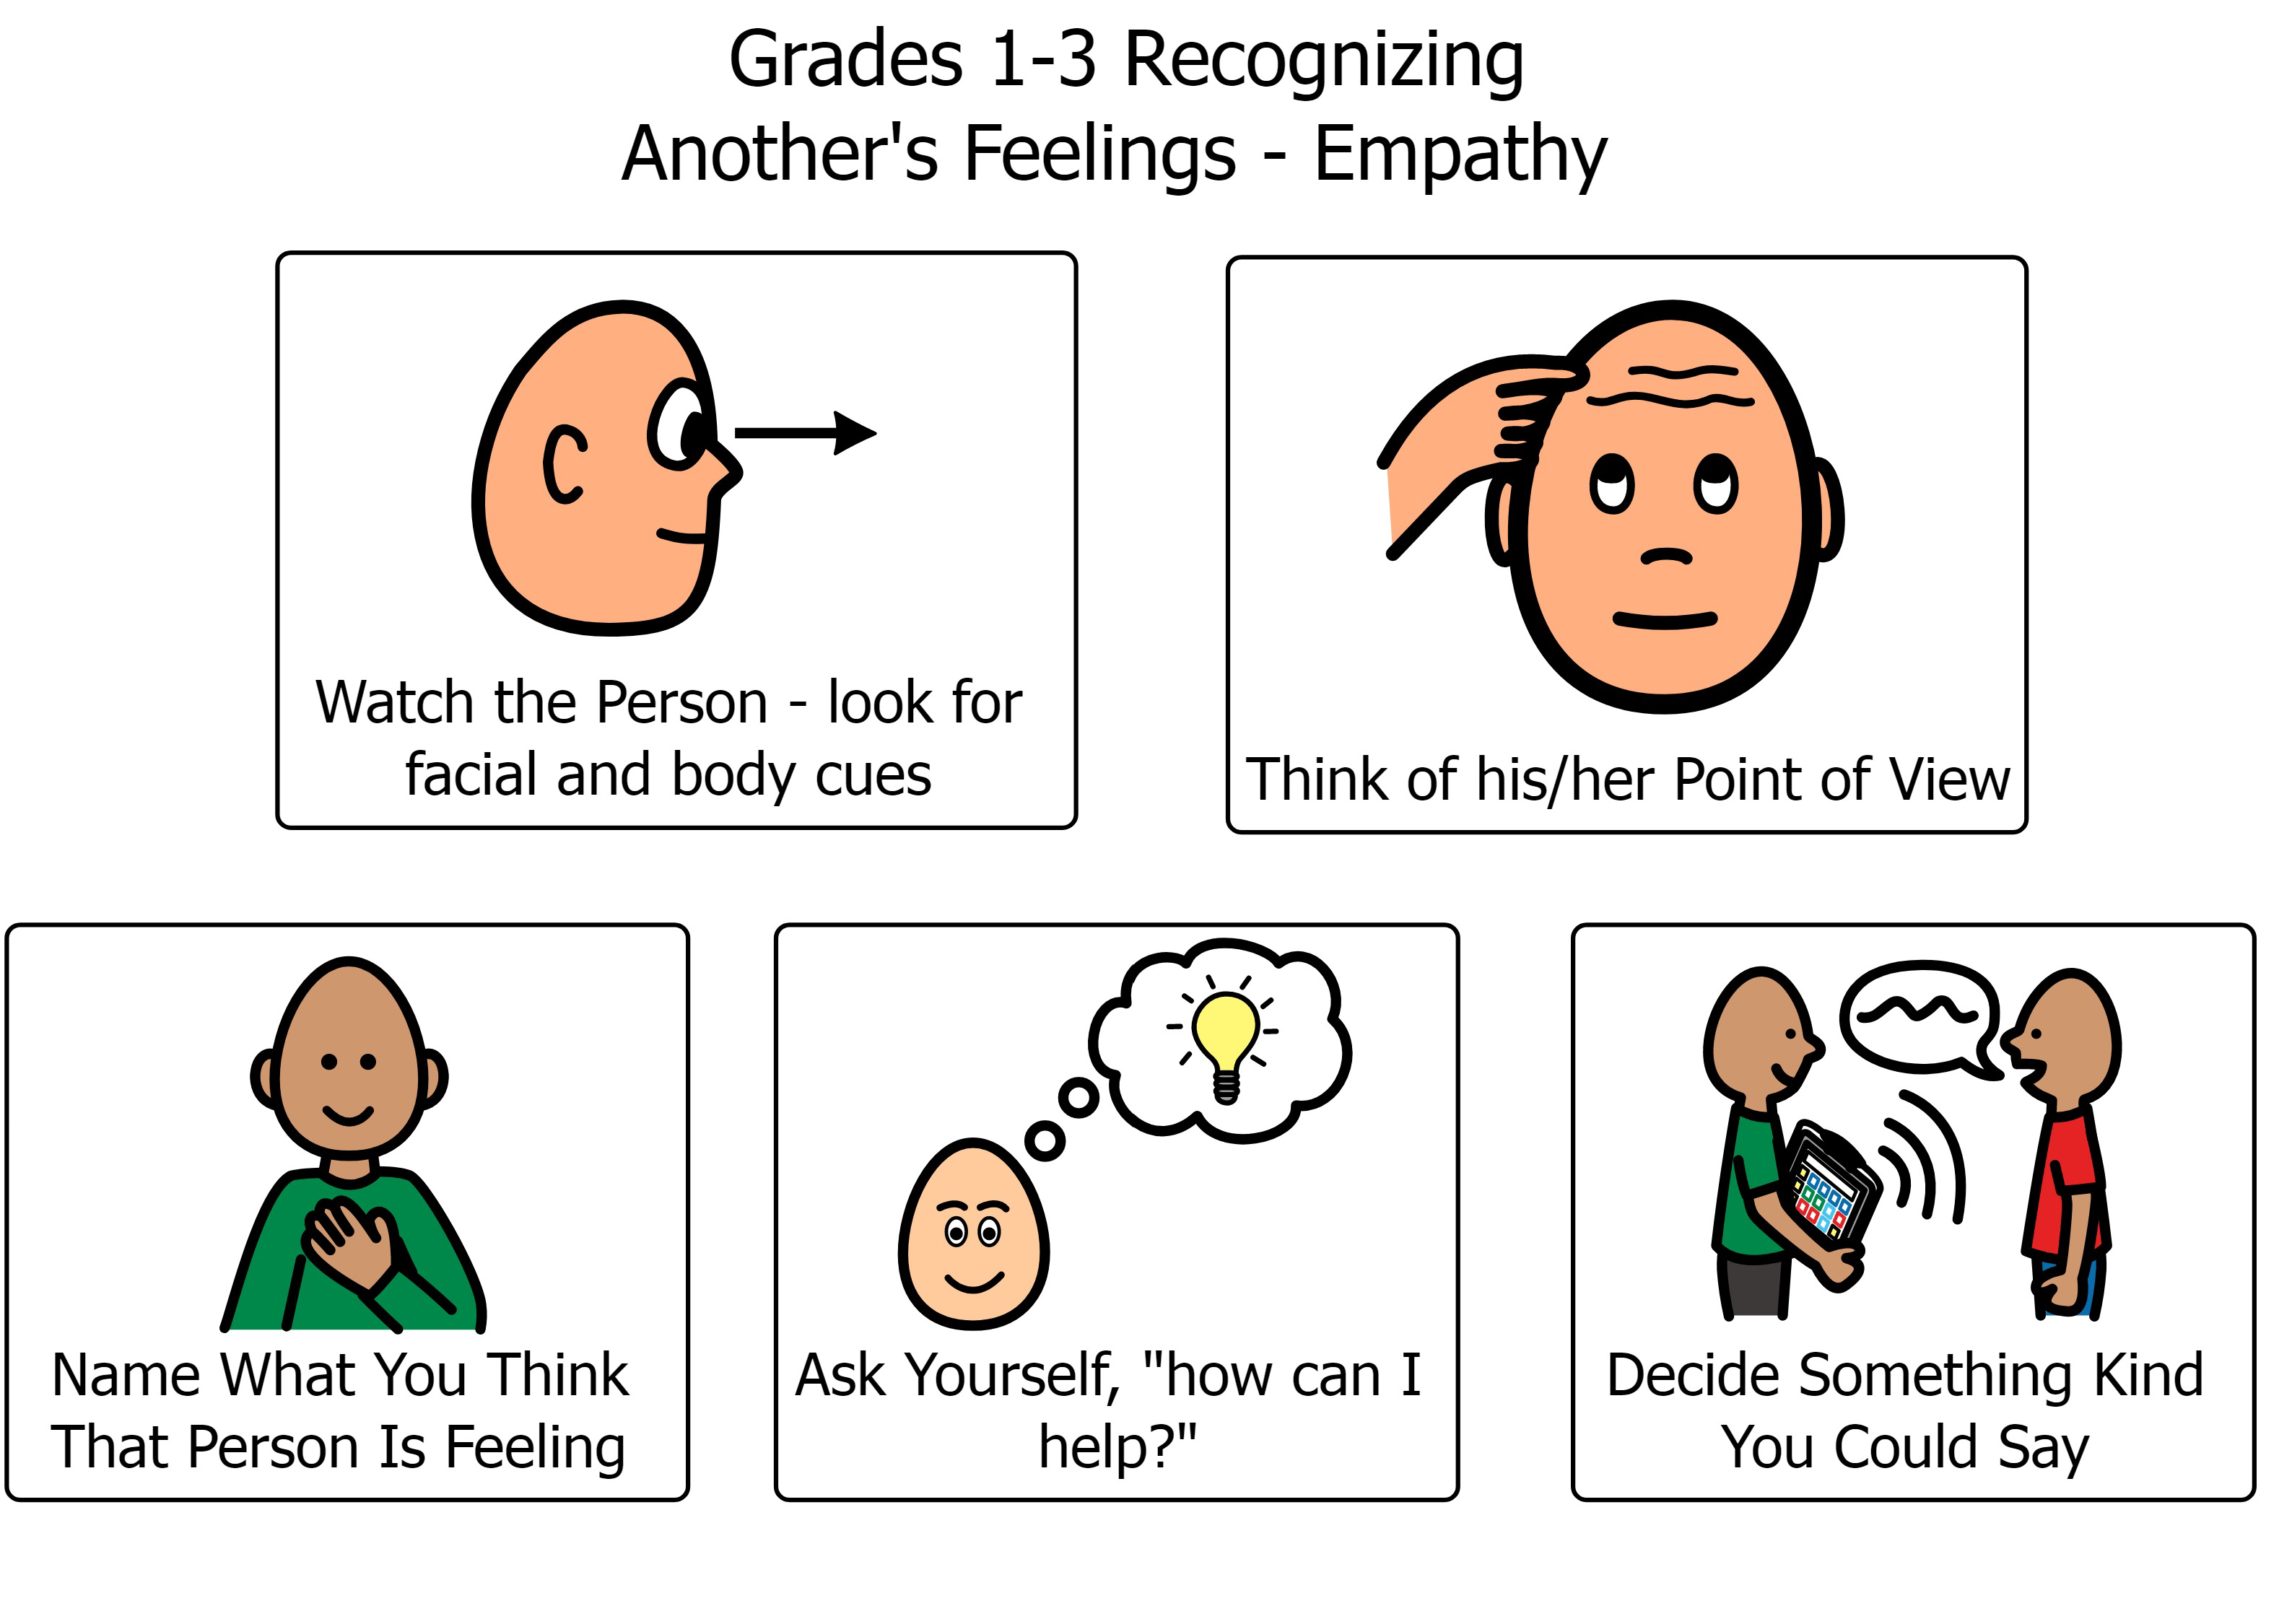 Grades 1-3 Recognizing Feelings In Another - Empathy poster